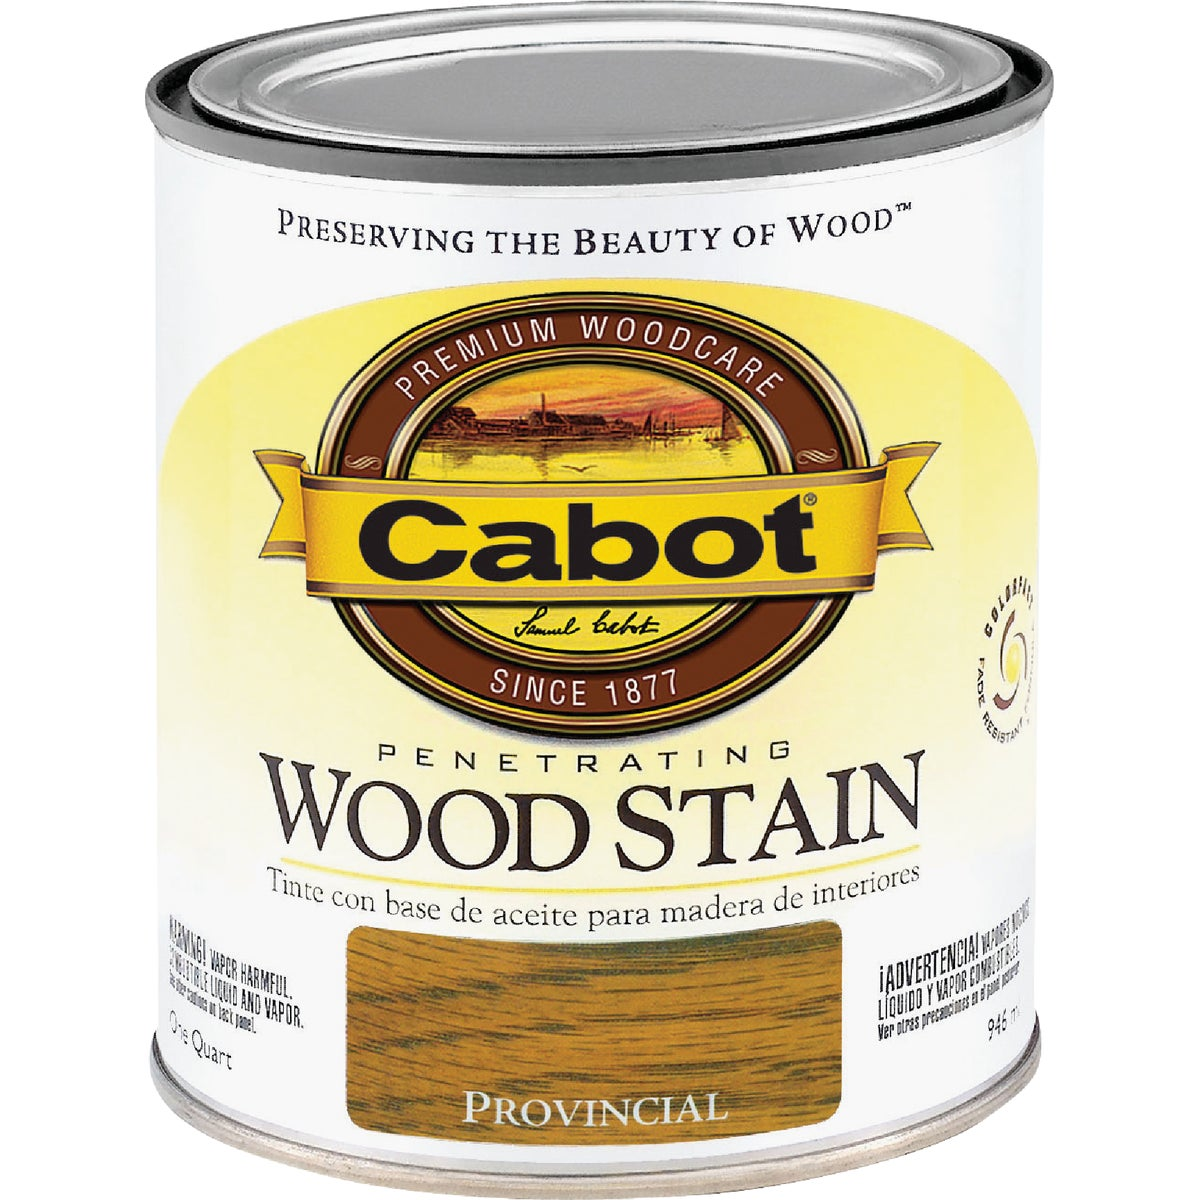 INT PROVNCIAL WOOD STAIN - 144.0008126.005 by Valspar Corp